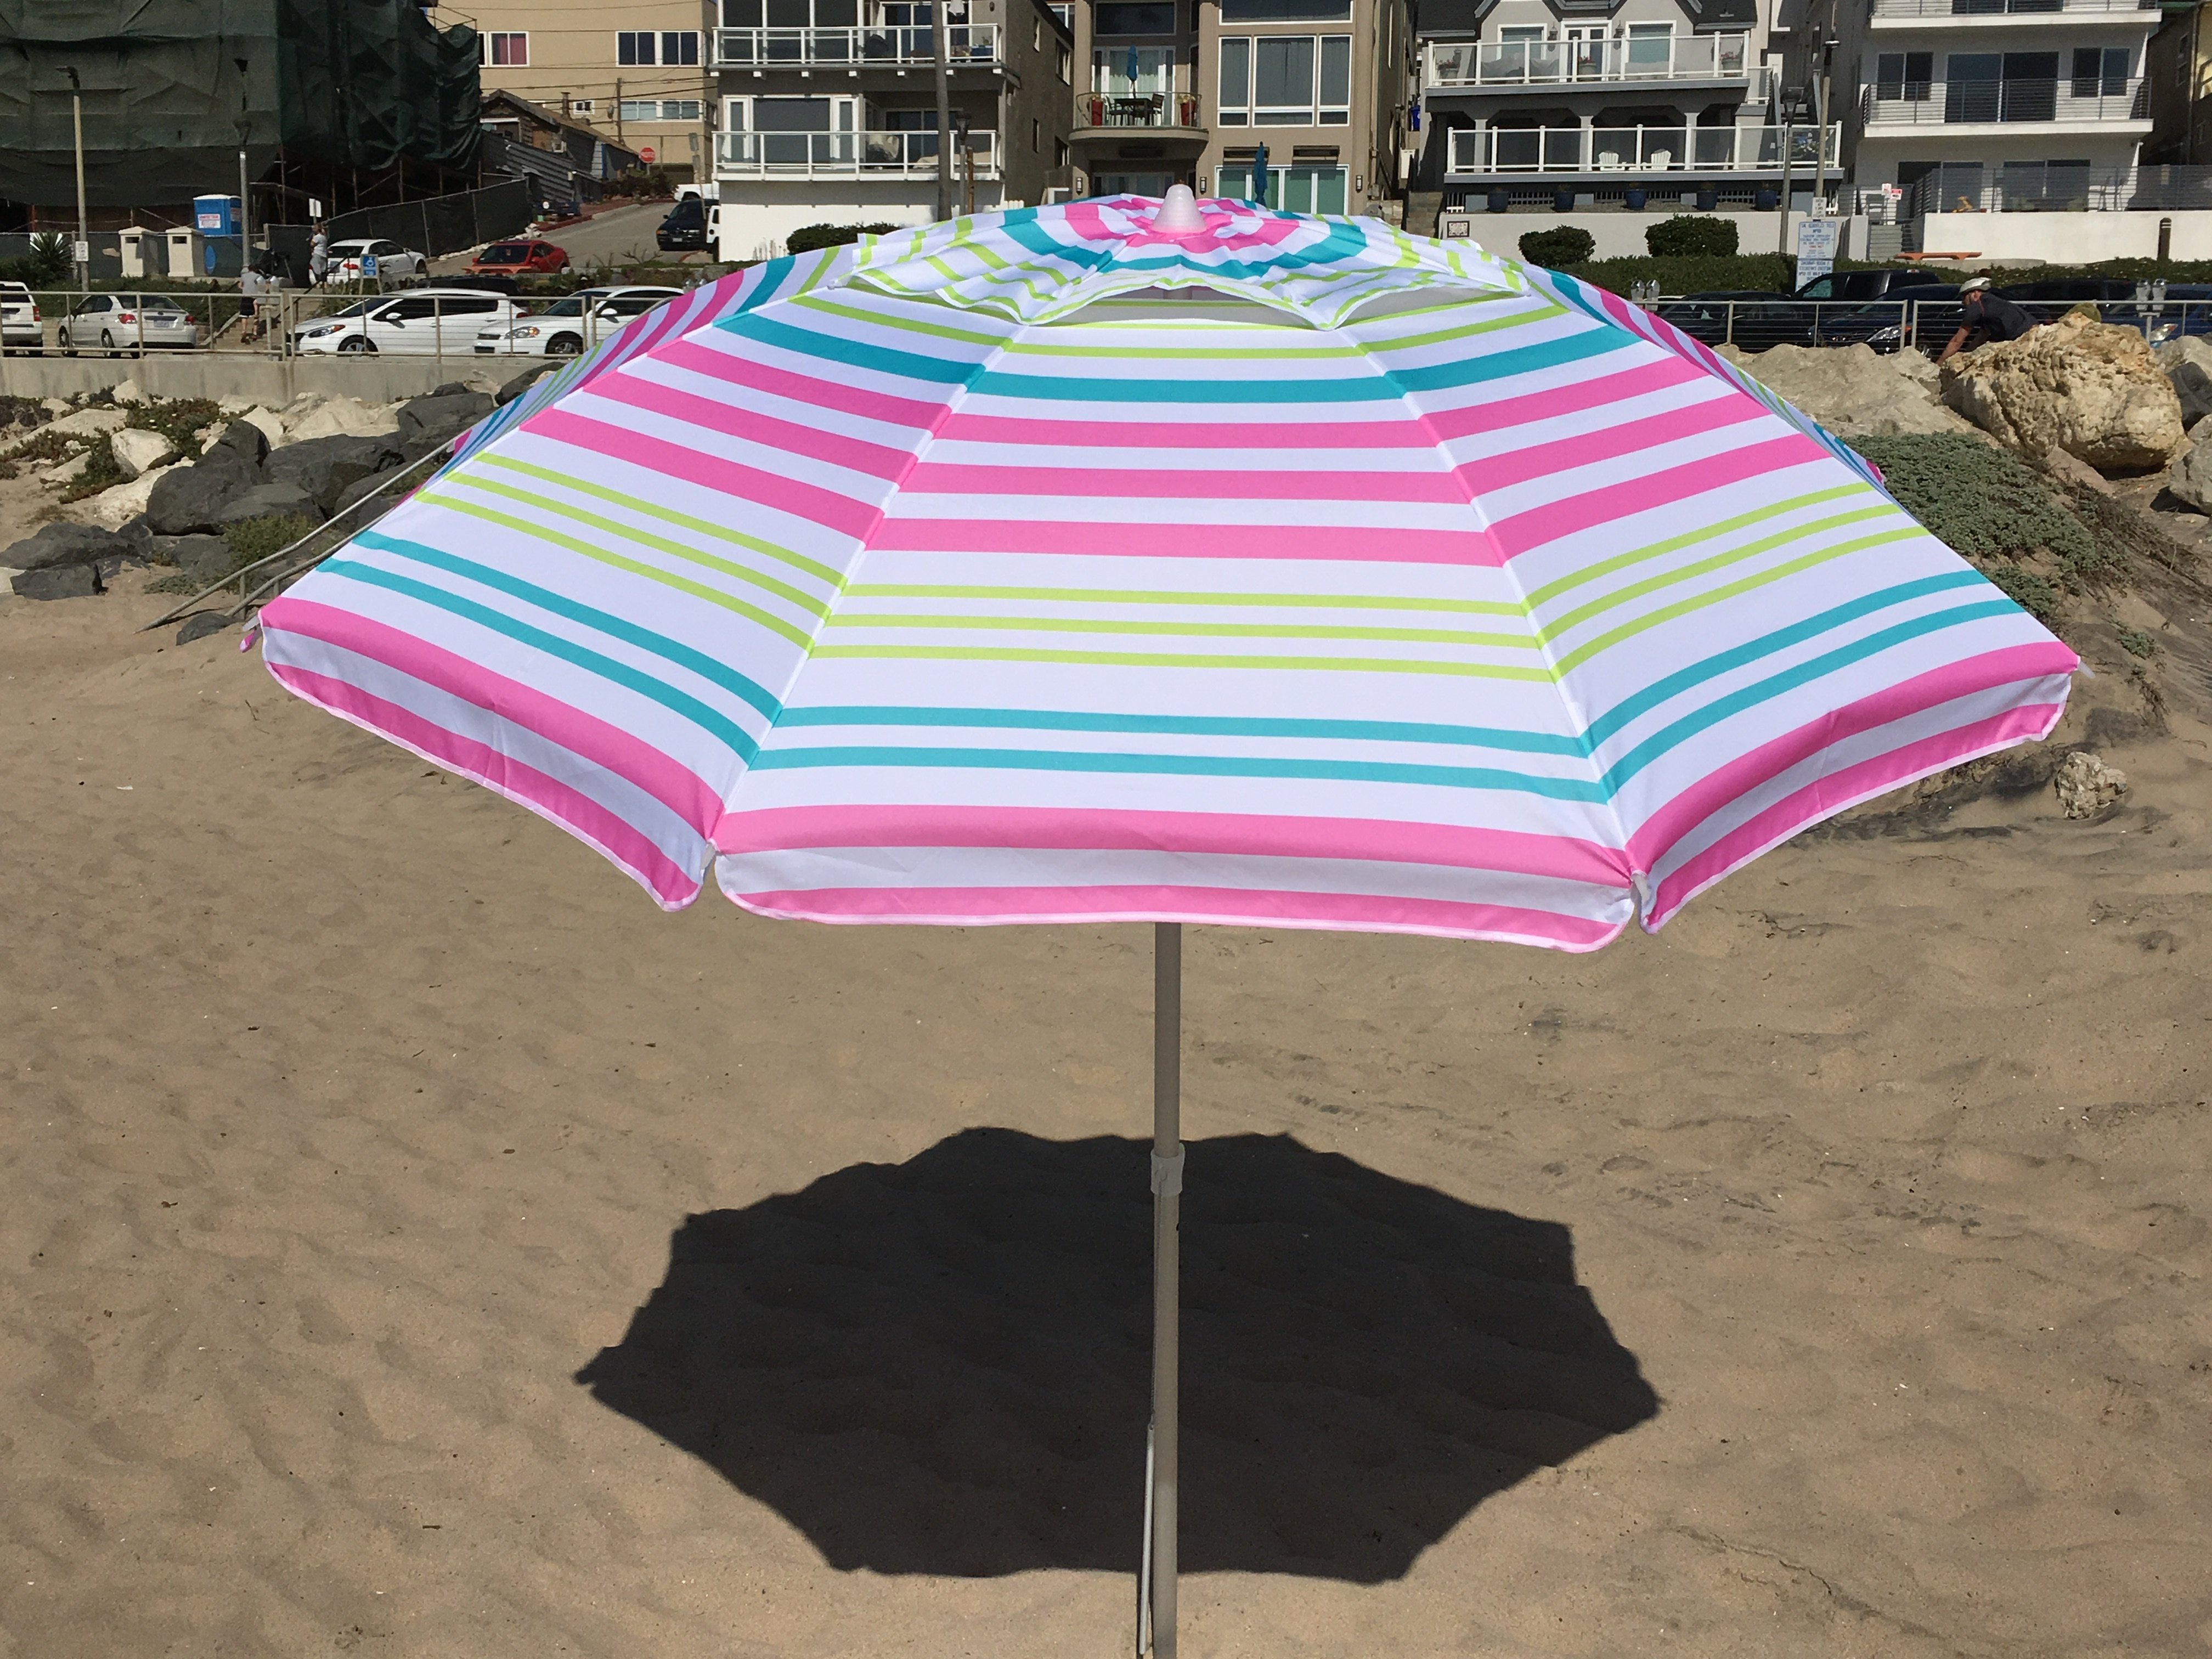 7' Beach Umbrella For Most Up To Date Schroeder Heavy Duty Beach Umbrellas (View 6 of 20)